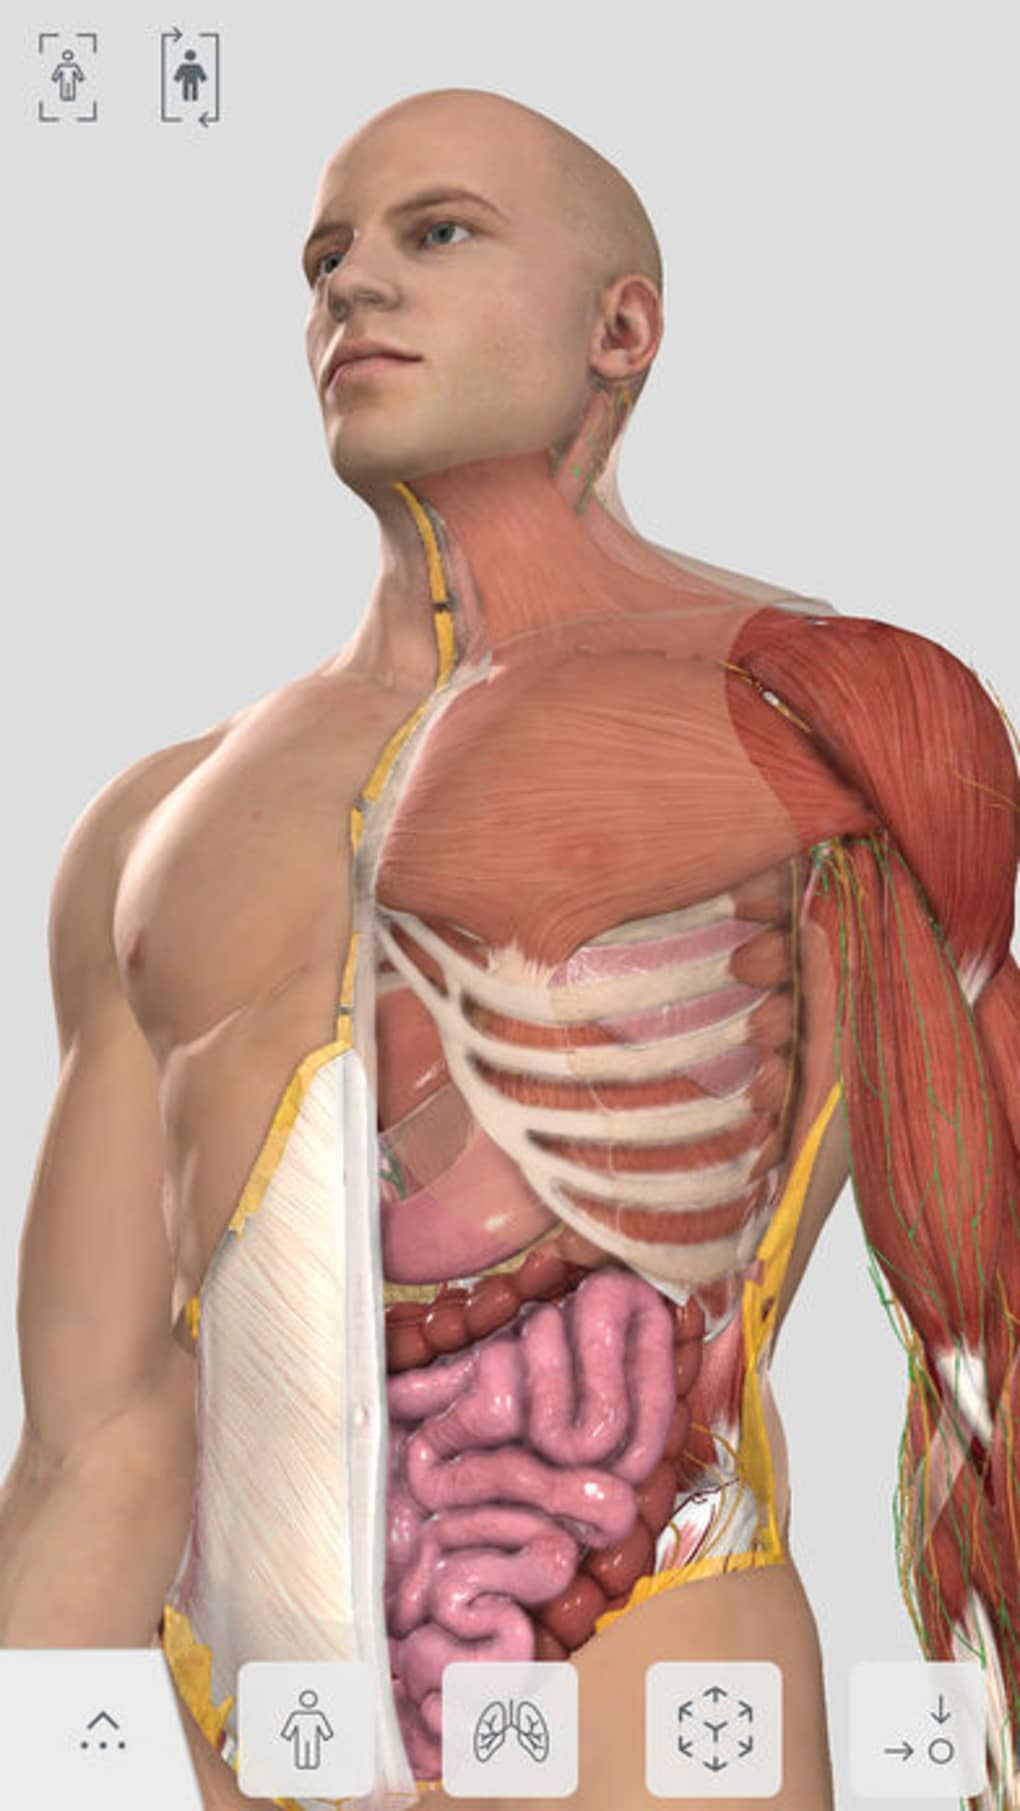 Complete Anatomy for iPhone (iPhone) - Download